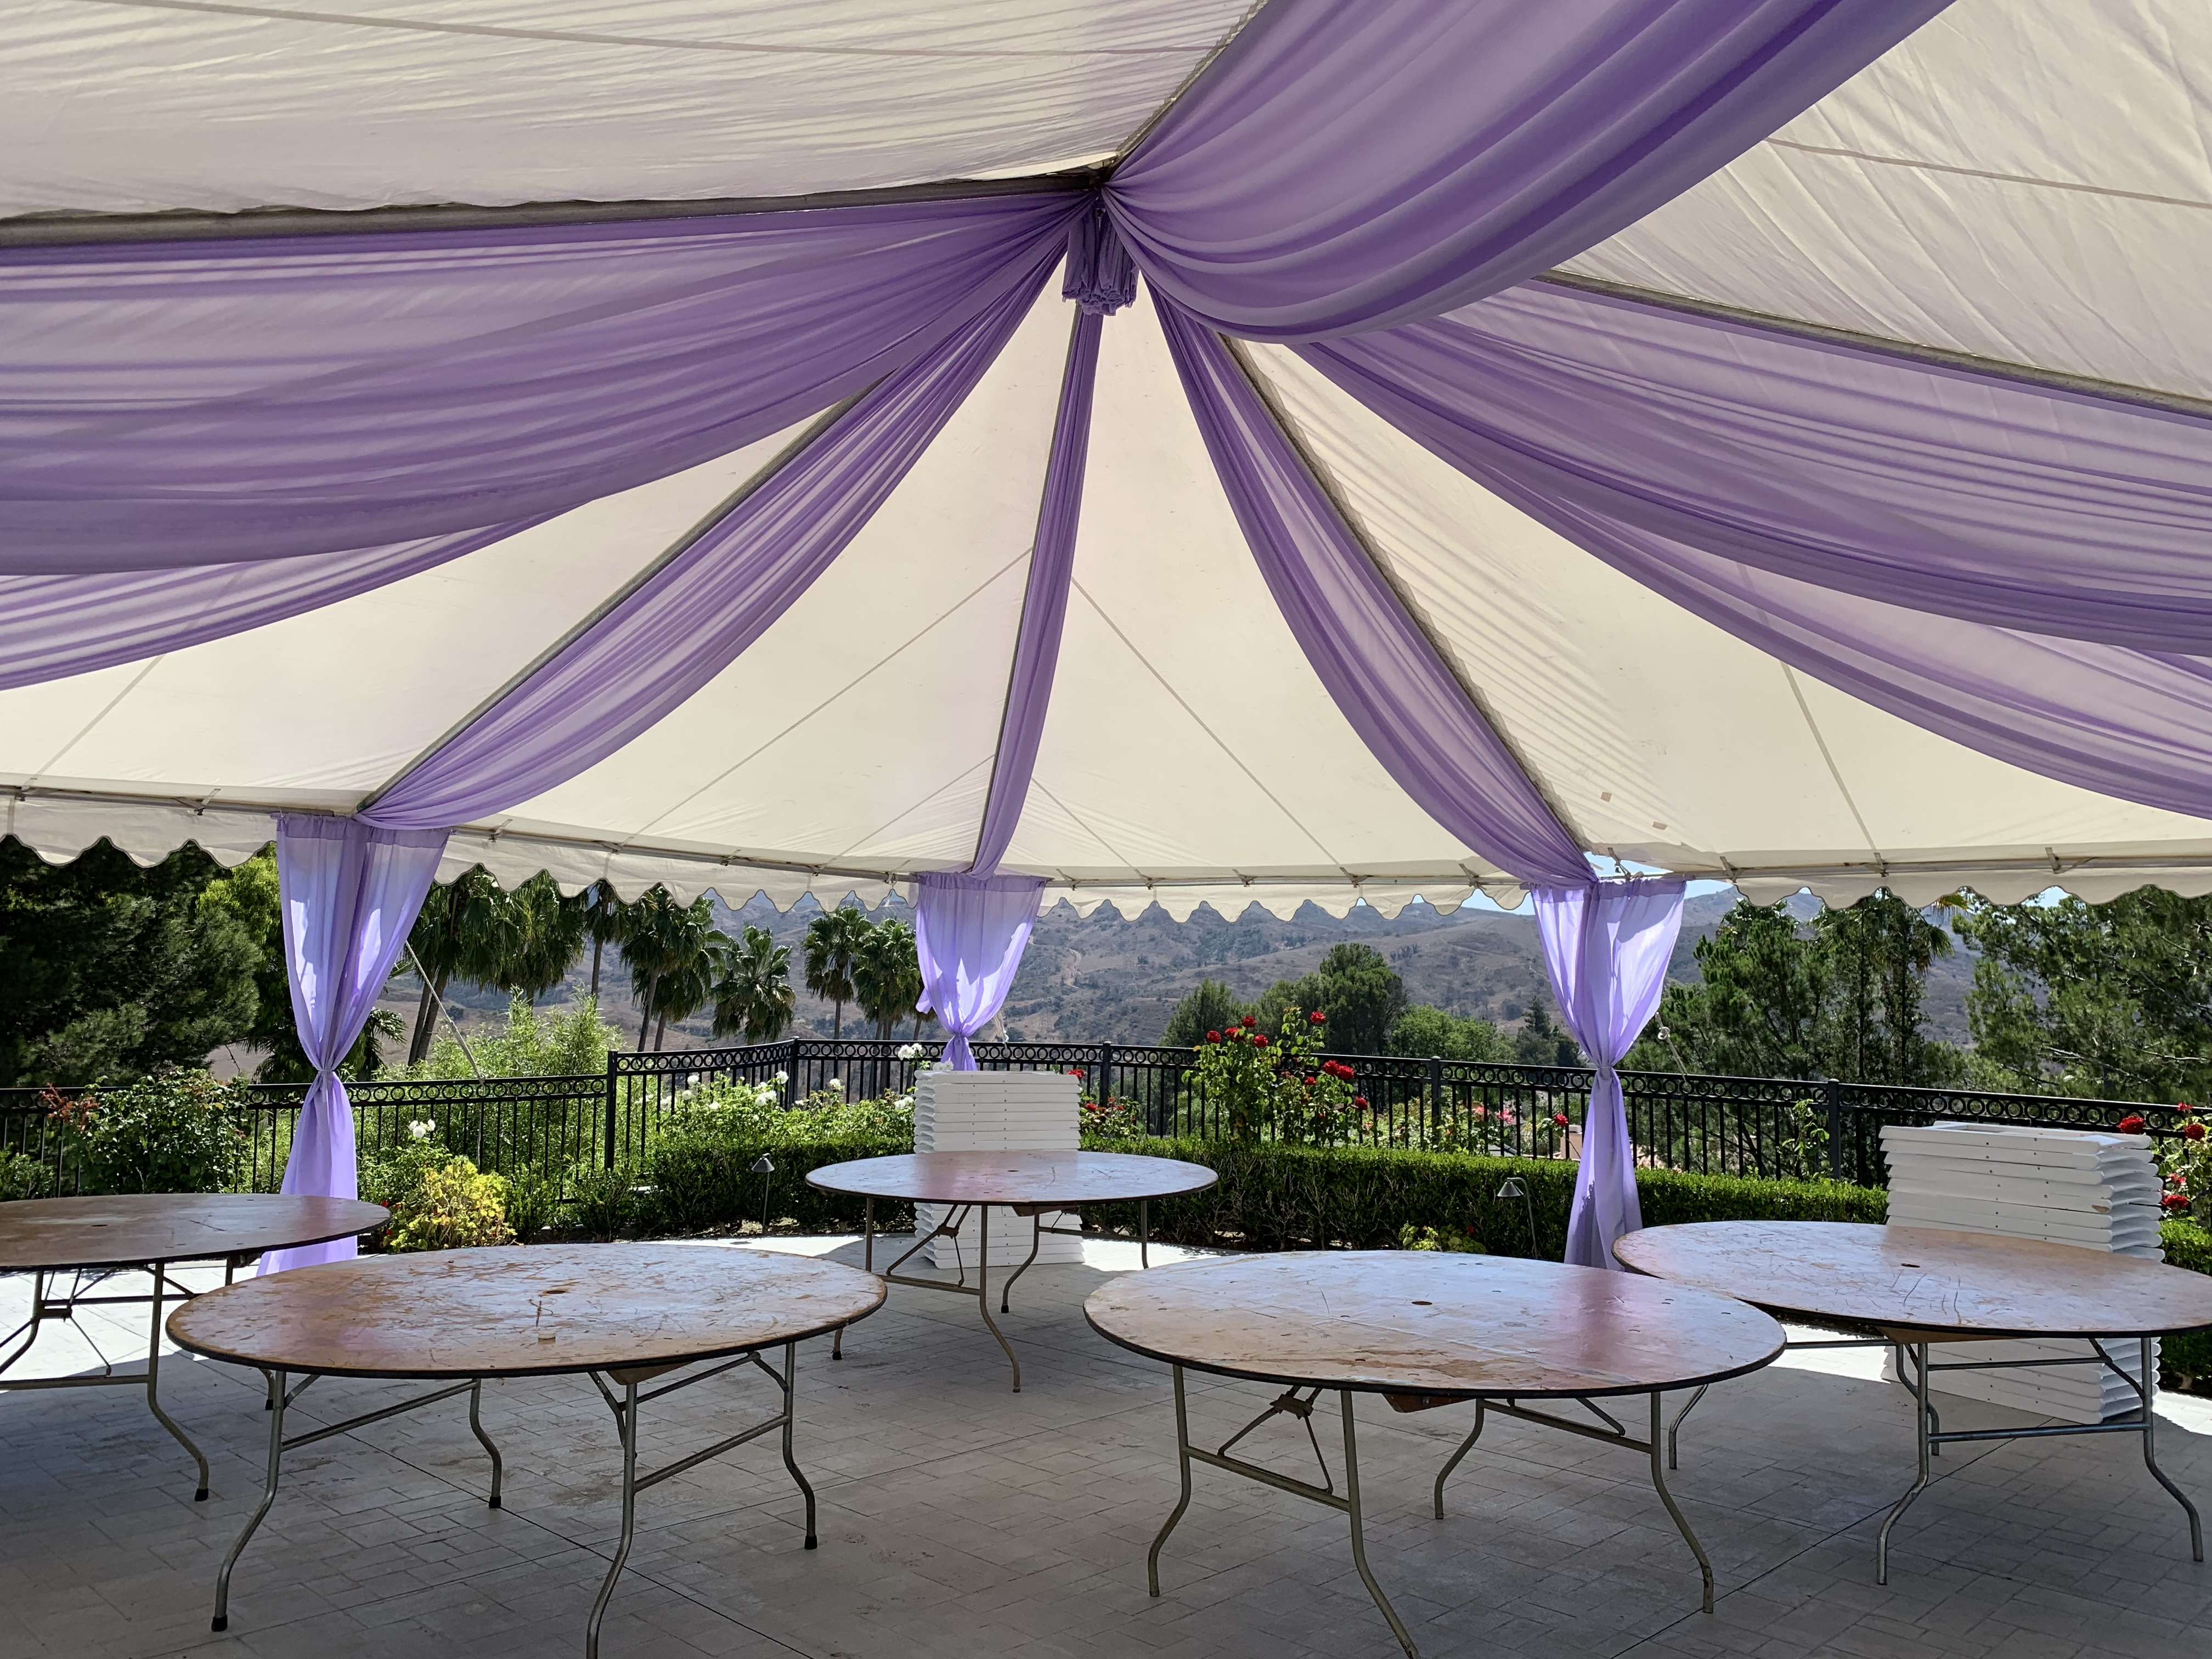 Canopy with Purple Design (2)